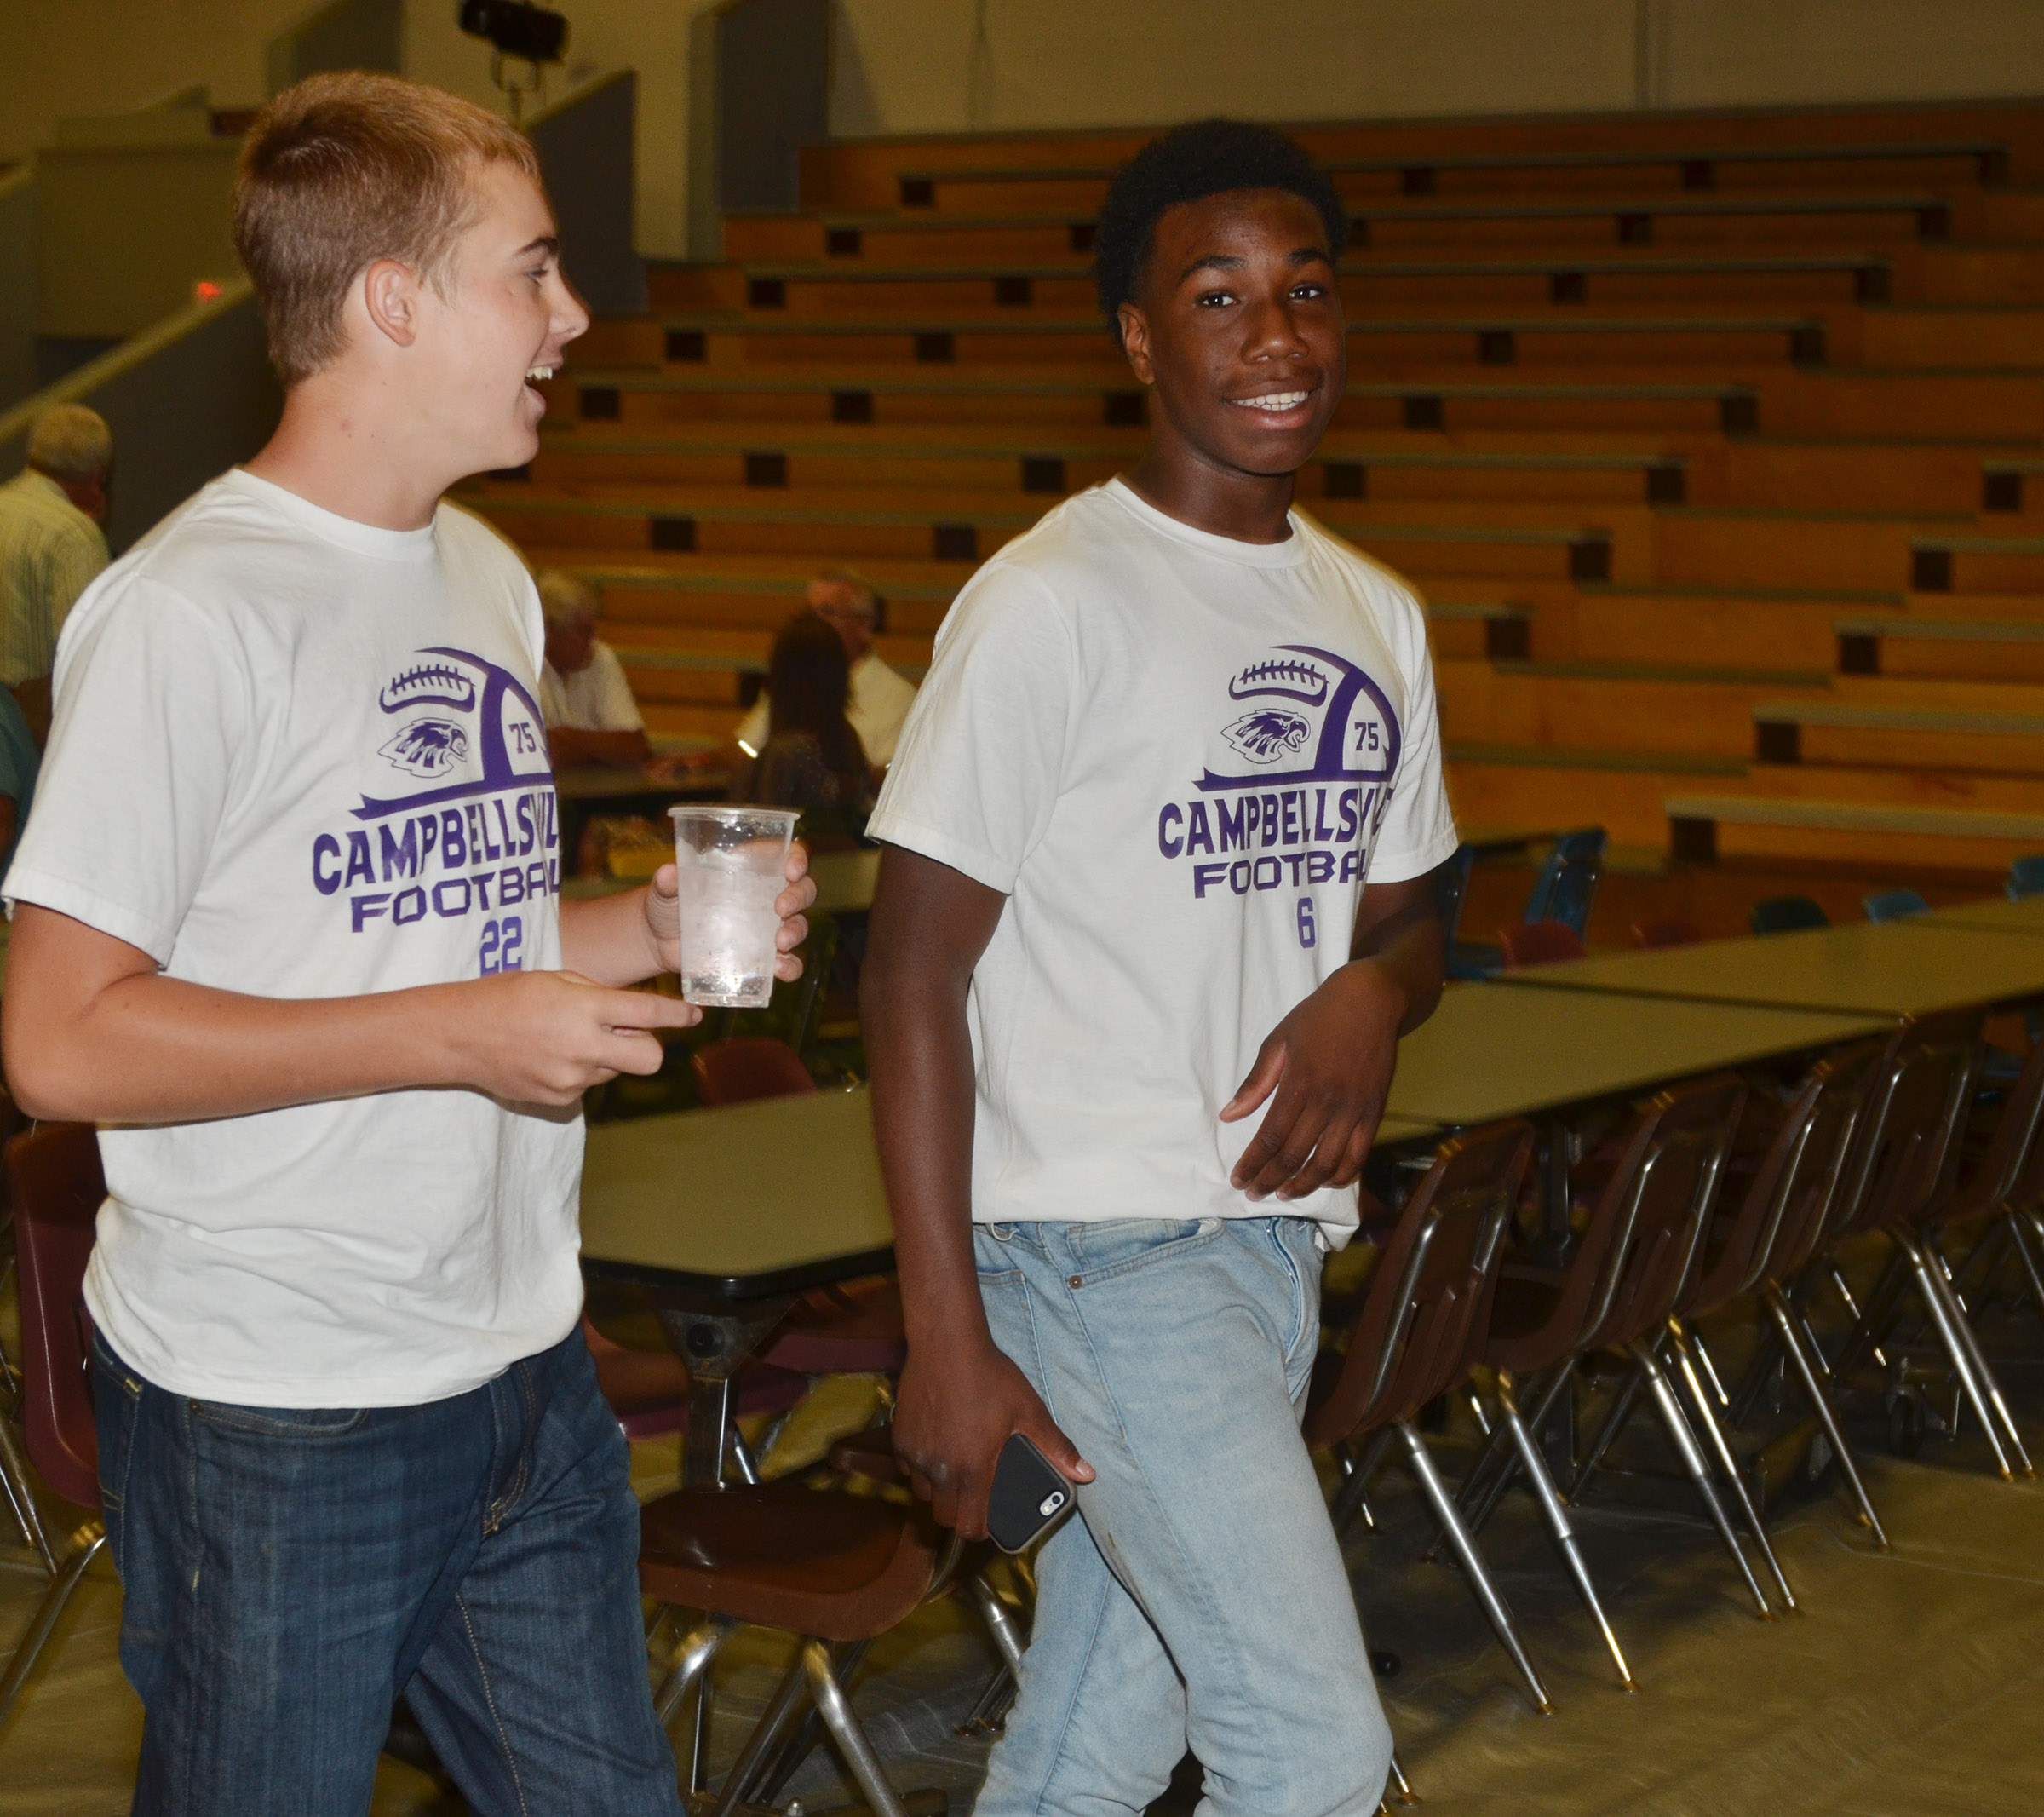 CHS sophomores Tyler Gribbins, at left, and Malachi Corley share a laugh at the annual CHS football dinner and auction.